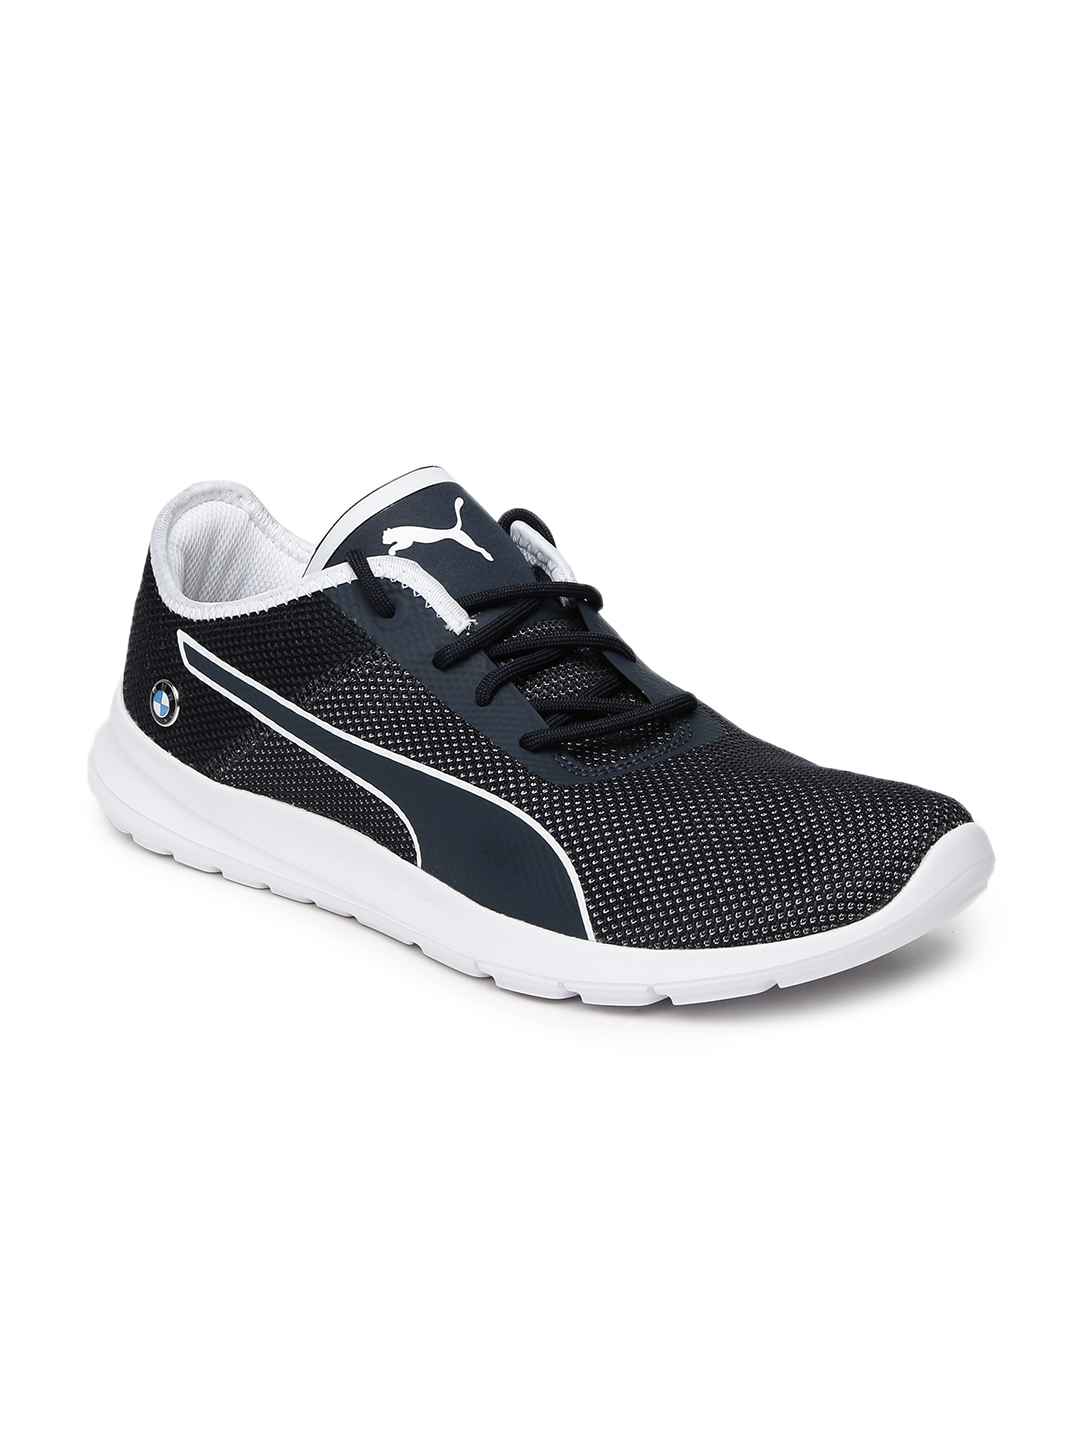 3a17269bca Buy Puma Unisex Navy Blue BMW MS Runner Sneakers - Casual Shoes for ...